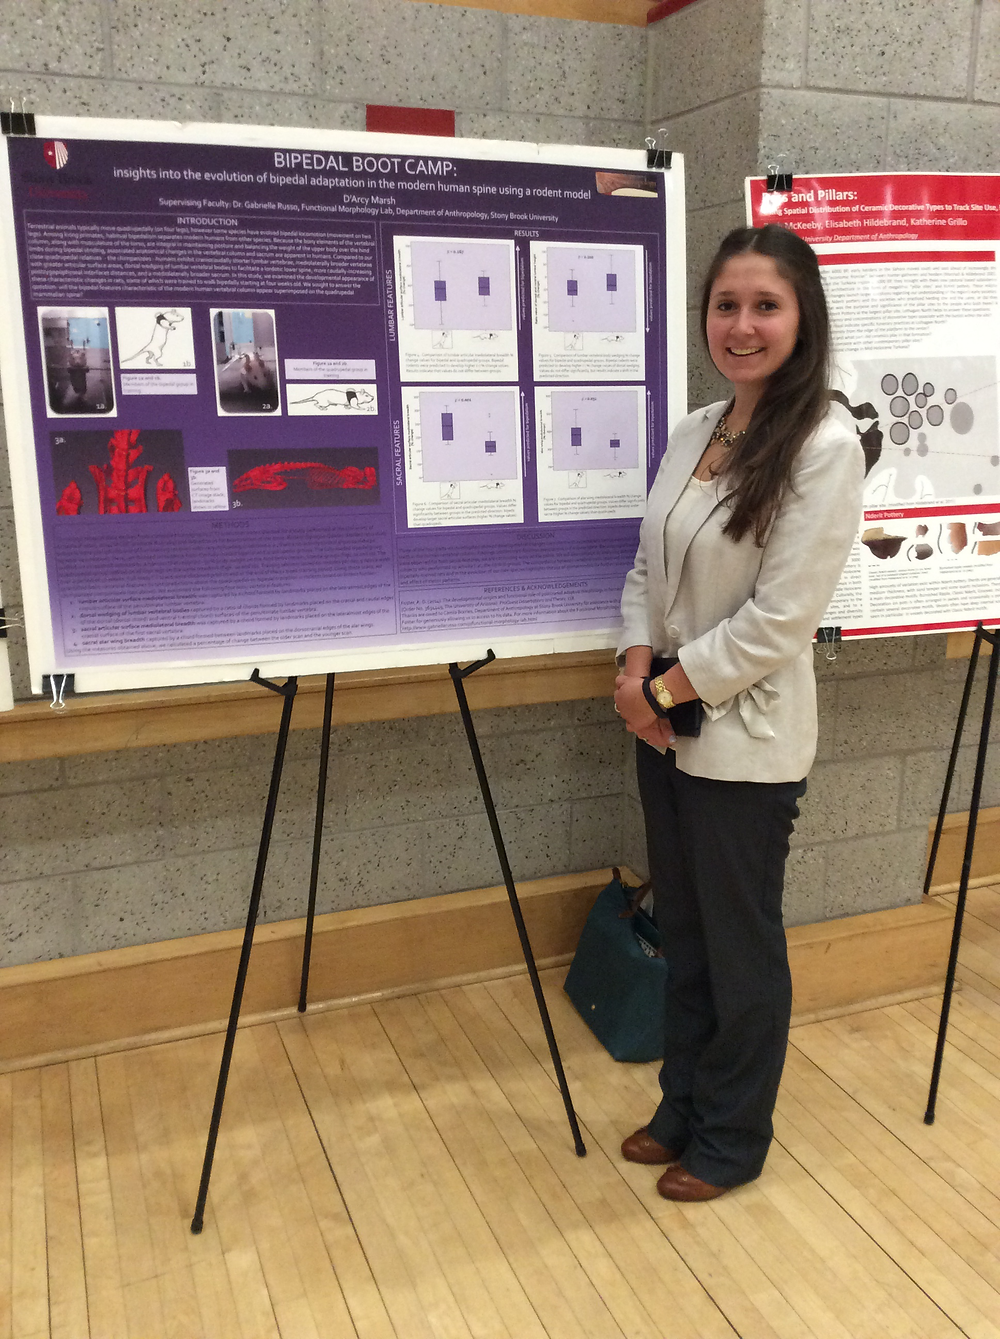 """D'Arcy Marsh (17', Anthropology major, Biology minor) presenting her poster """"Bipedal Bootcamp: insights into the evolution of bipedal adaptations in the modern human spine using a rodent model""""."""